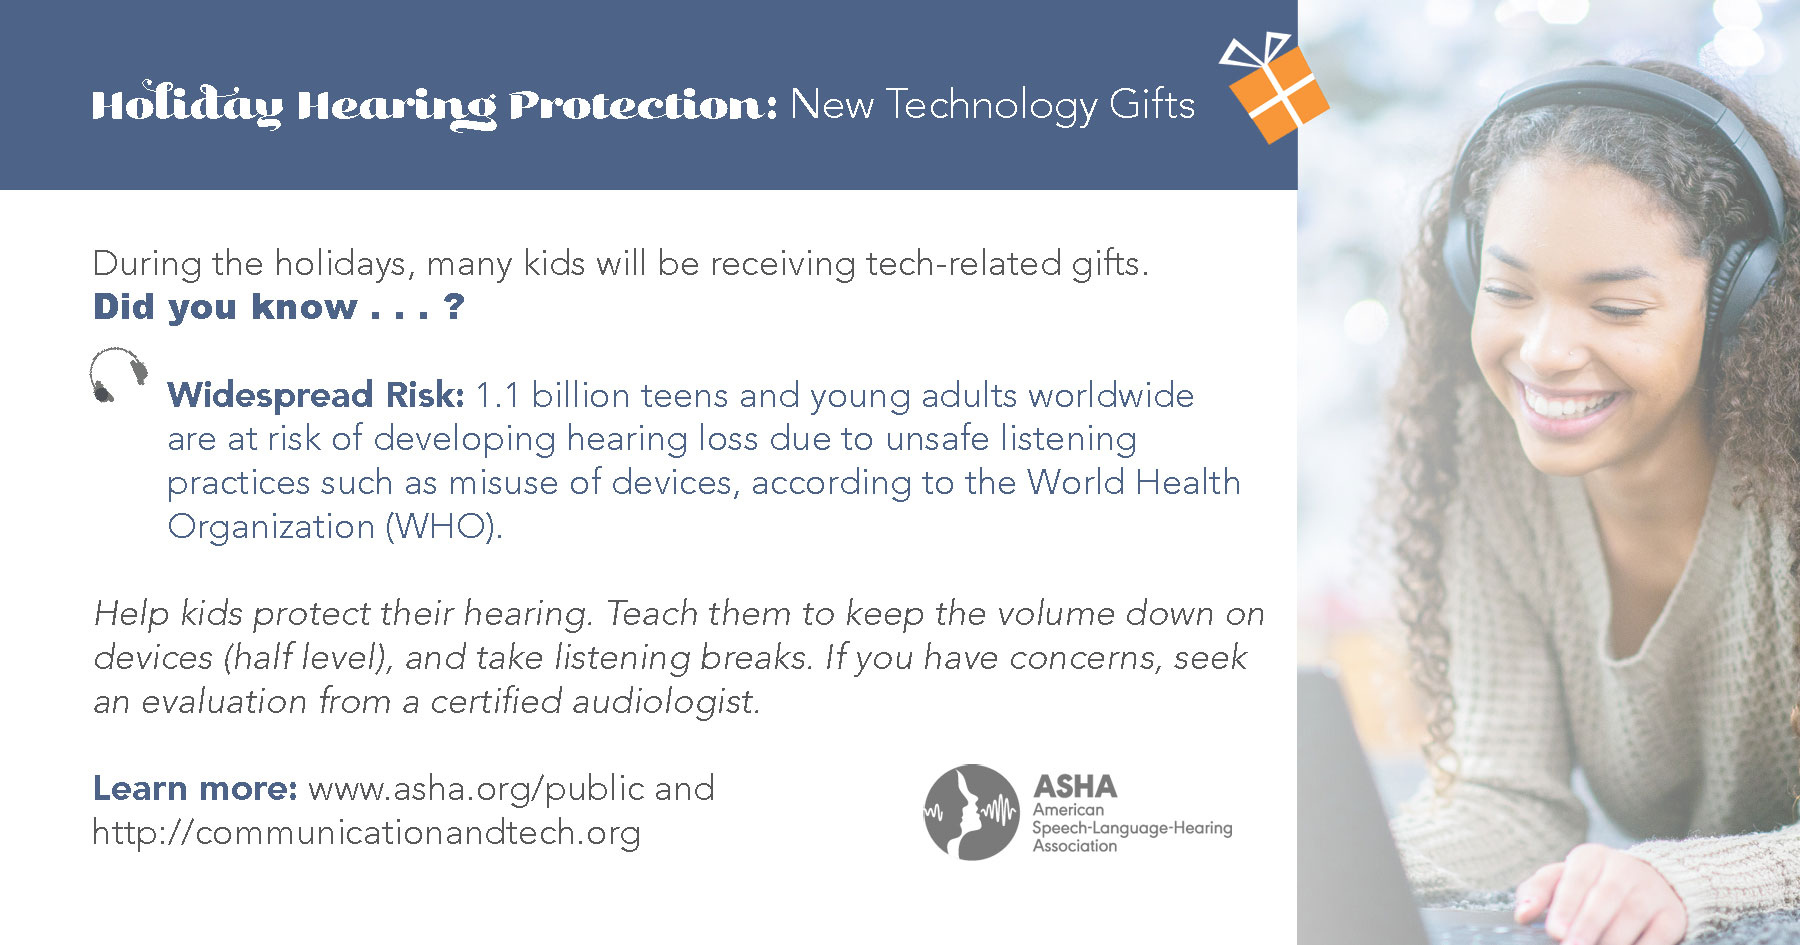 Technology & Hearing Loss: Widespread Risk